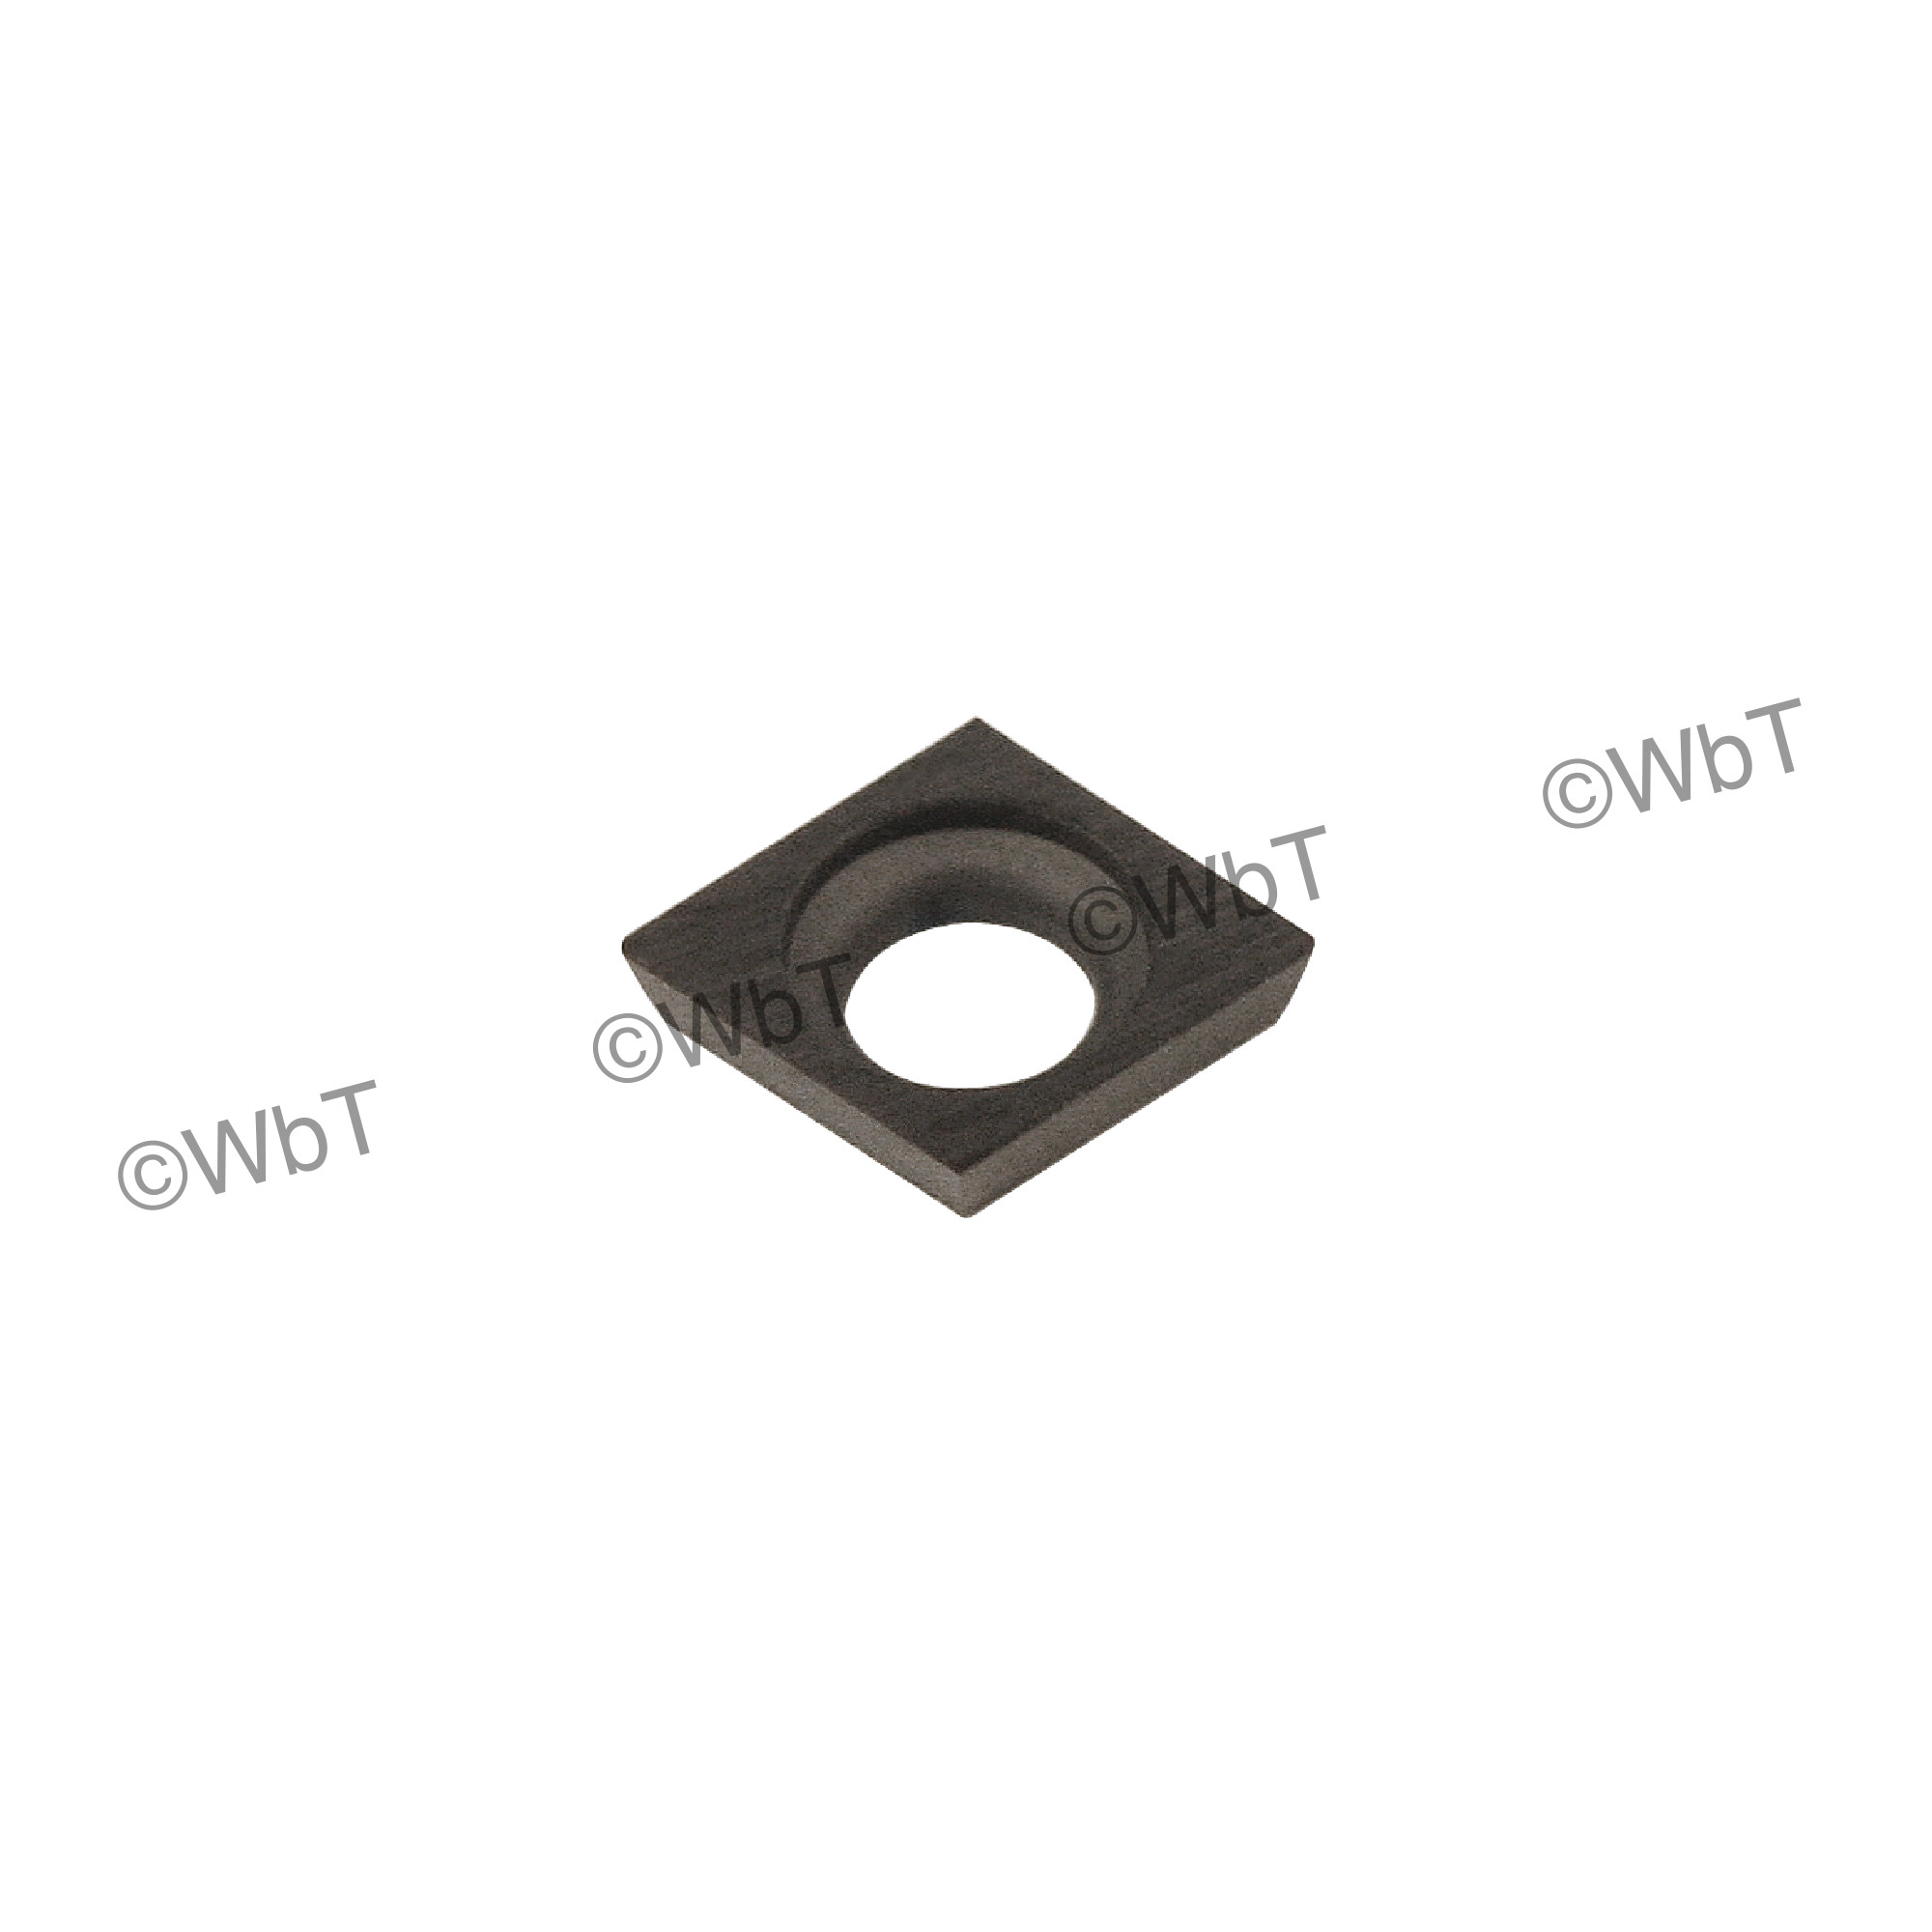 EVEREDE - CDCD-07 TL120 - 80° Diamond / Indexable Carbide Turning Insert